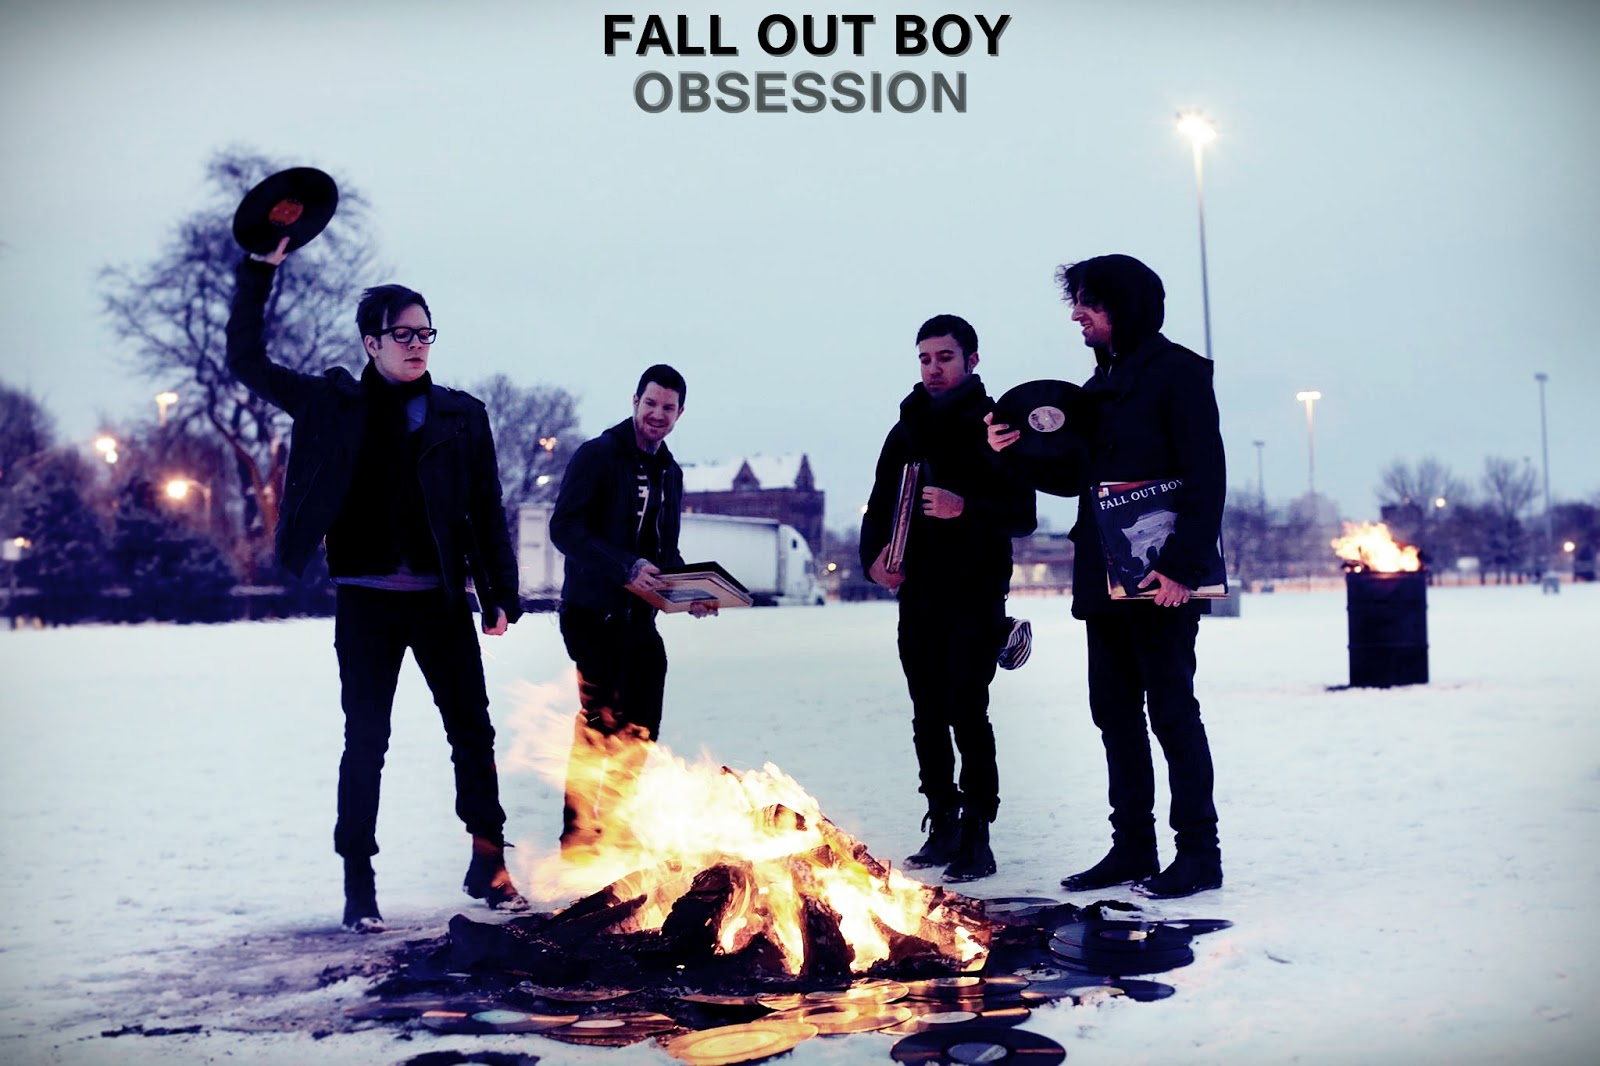 Fall Out Boy Wallpapers 2013 Fall Out Boy Wallpapers Fob Obsession Fall Out Boy